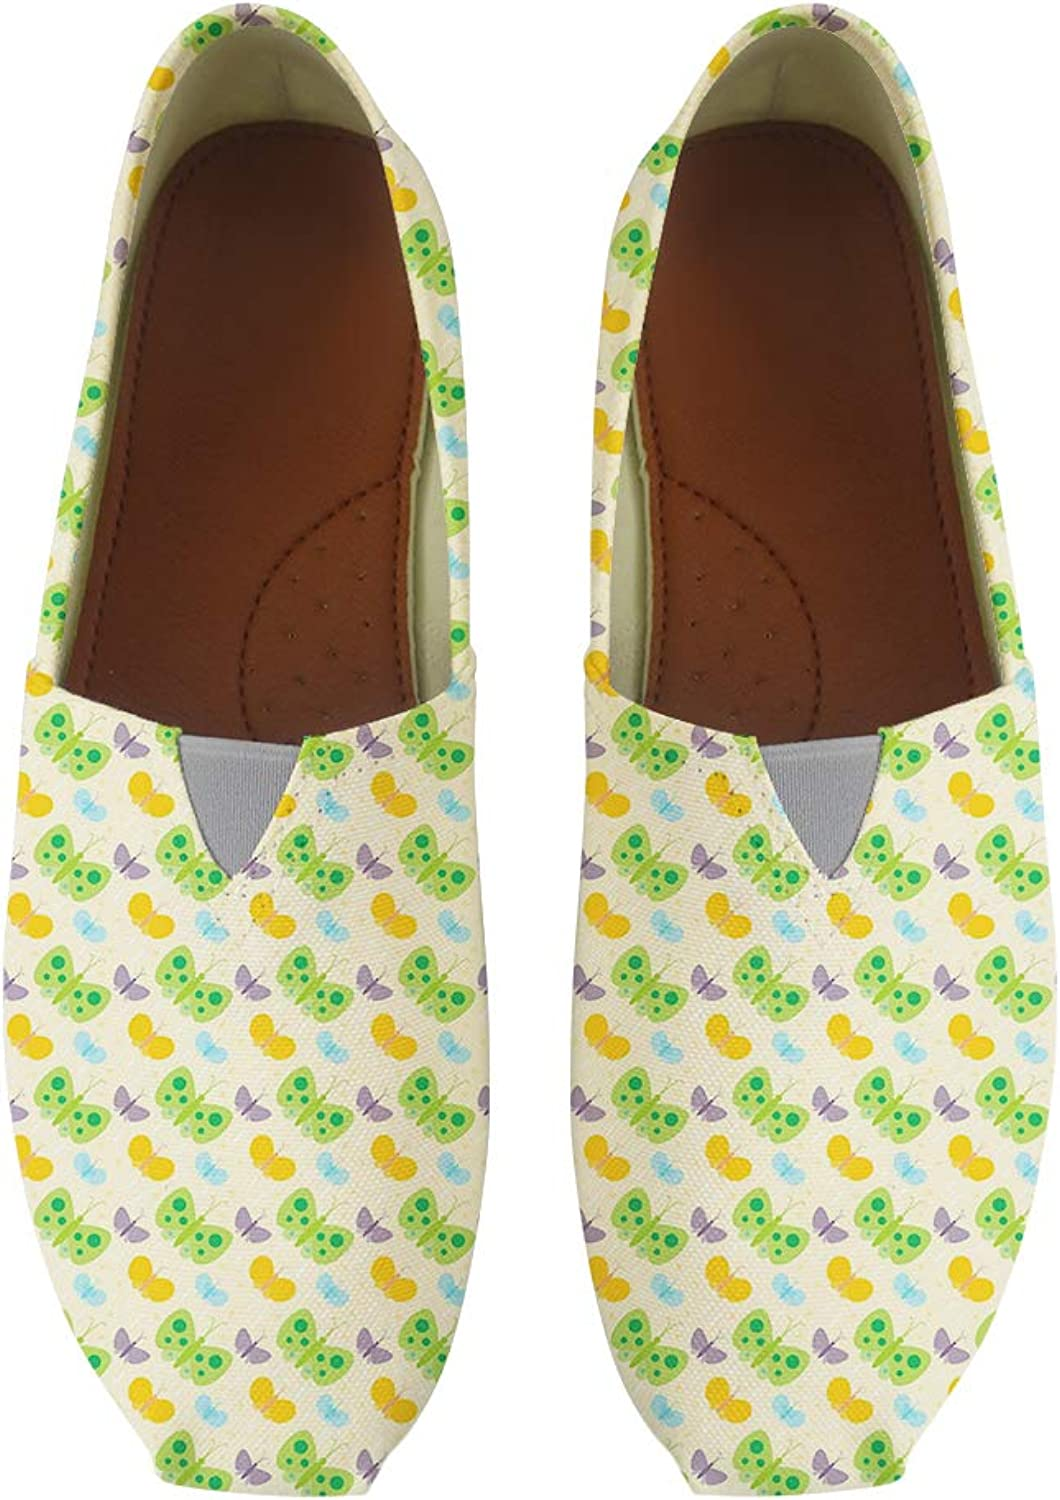 Owaheson Classic Canvas Slip-On Lightweight Driving shoes Soft Penny Loafers Men Women colorful Butterflies